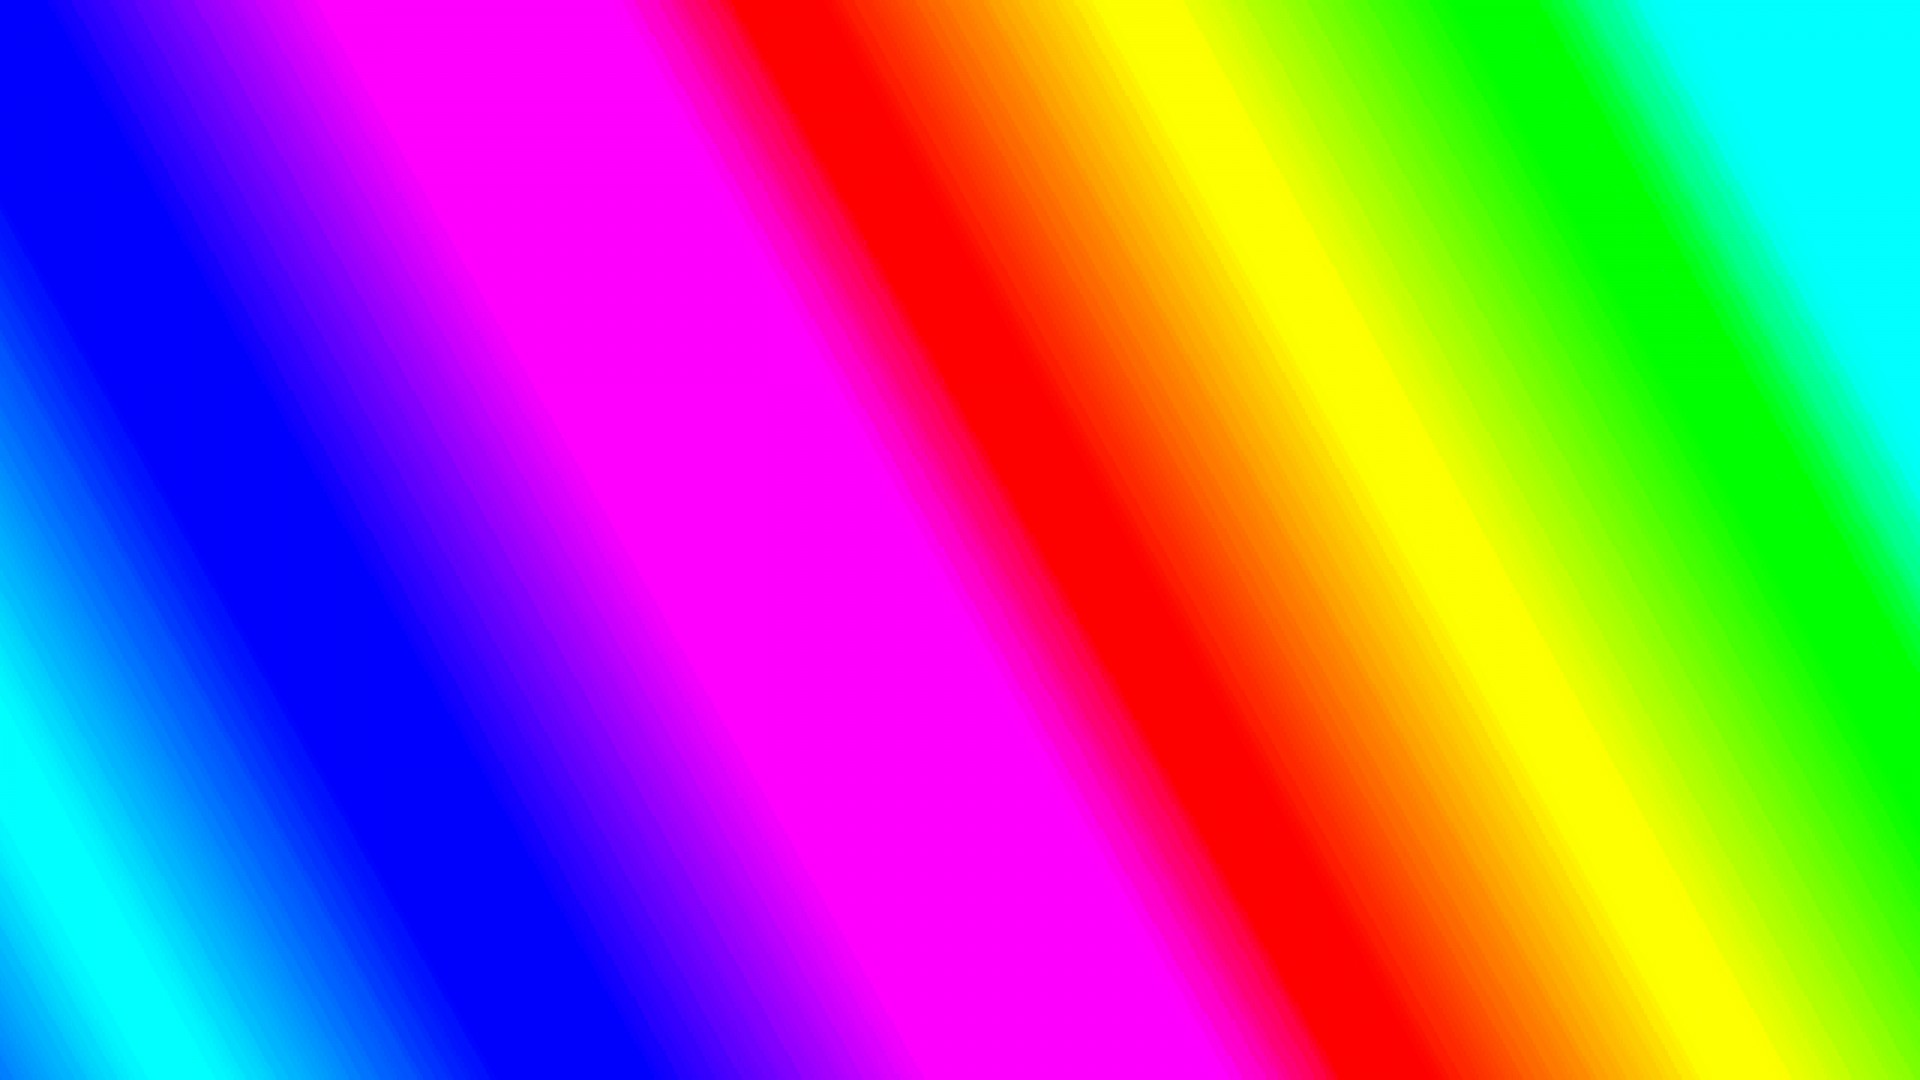 Multi Color Rainbow Background Free Stock Photo - Public Domain Pictures